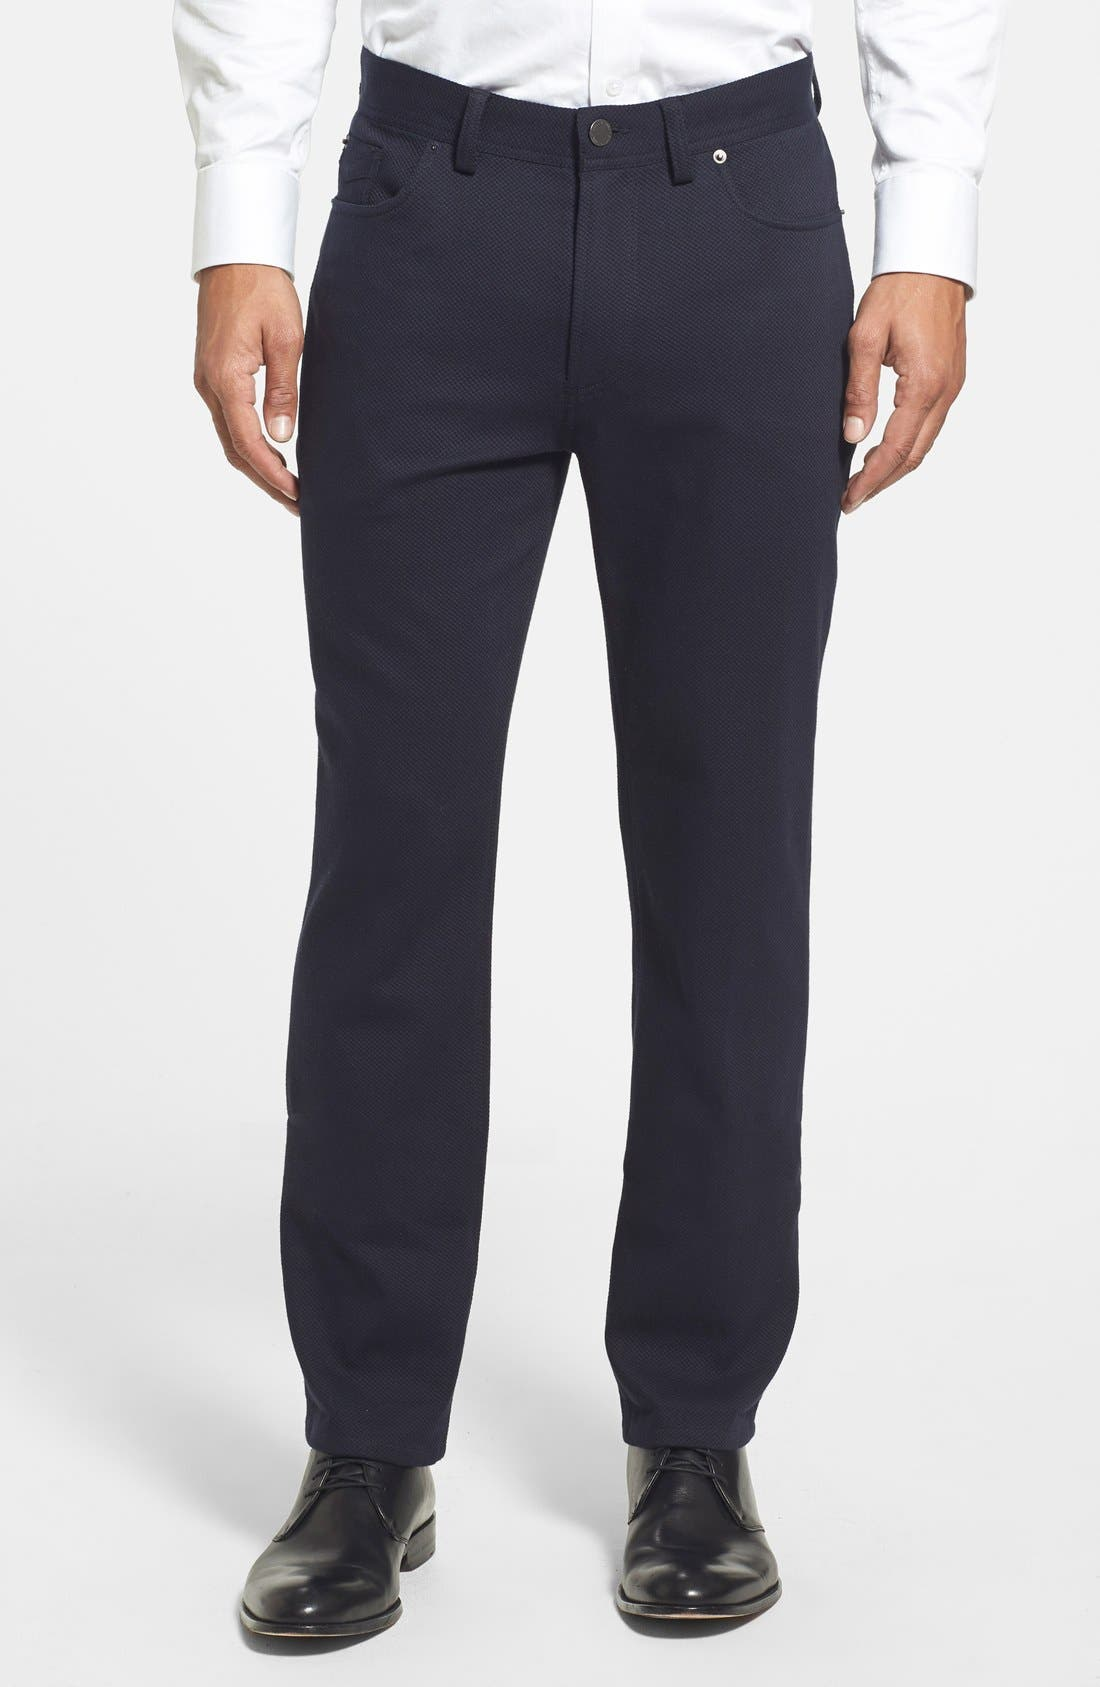 Main Image - Vince Camuto Straight Leg Five Pocket Stretch Pants